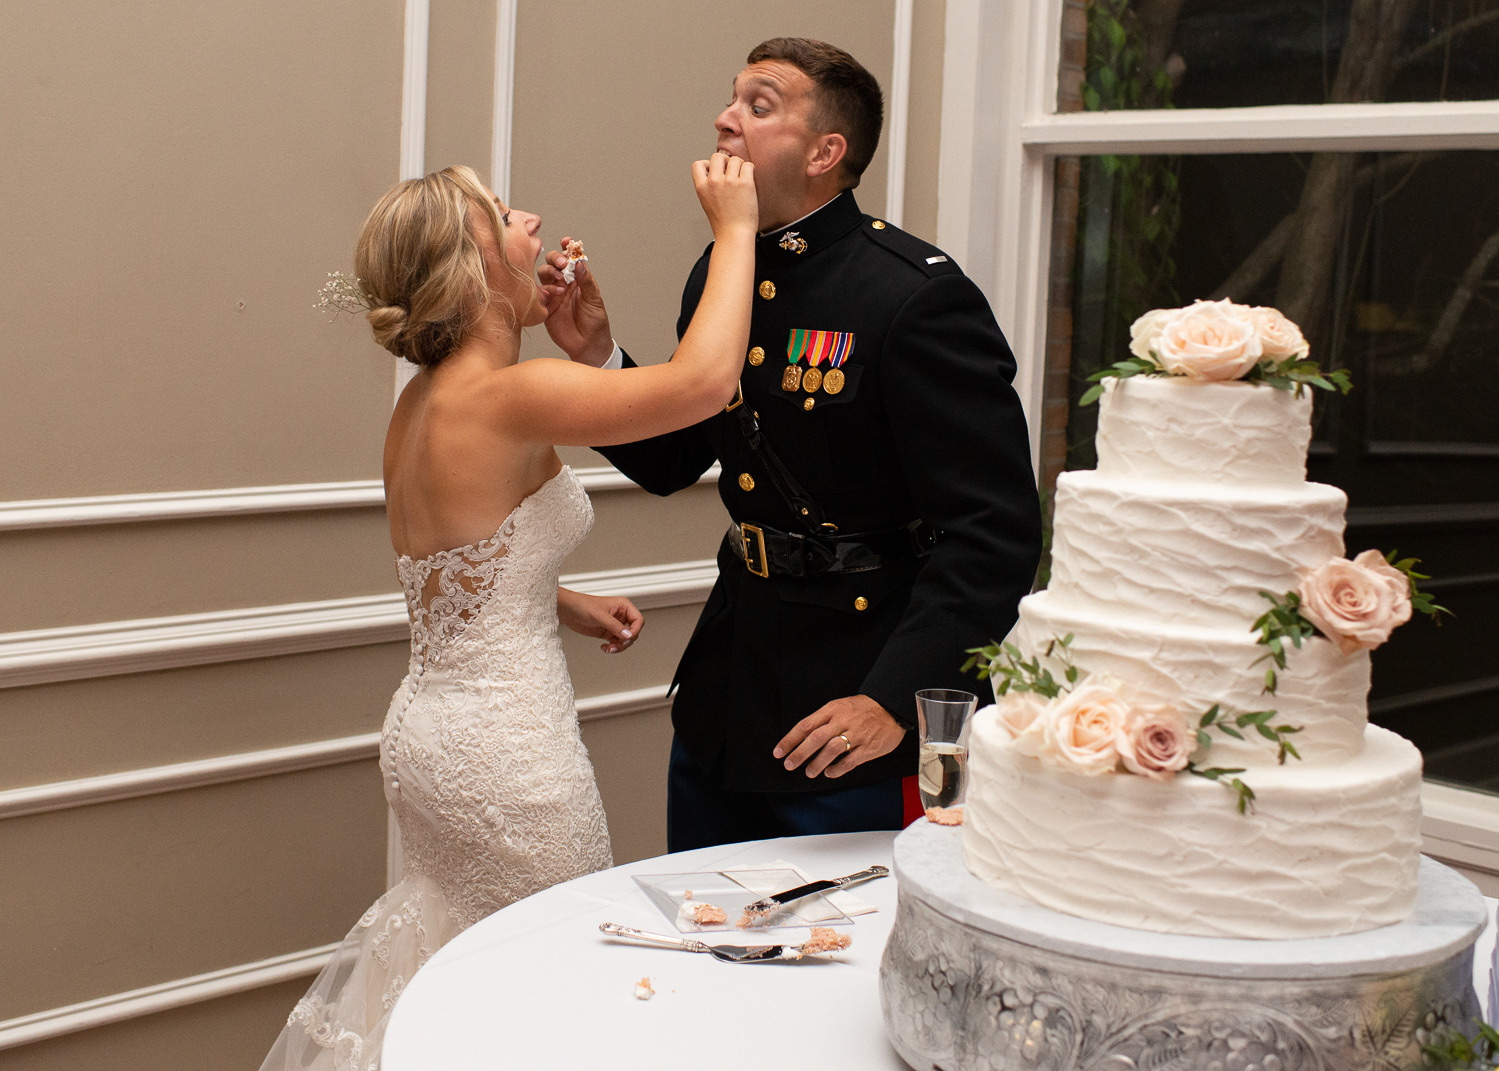 Memphis Wedding Photographer captures George and Ramsay's military wedding reception in Memphis TN. ALN IMAGES